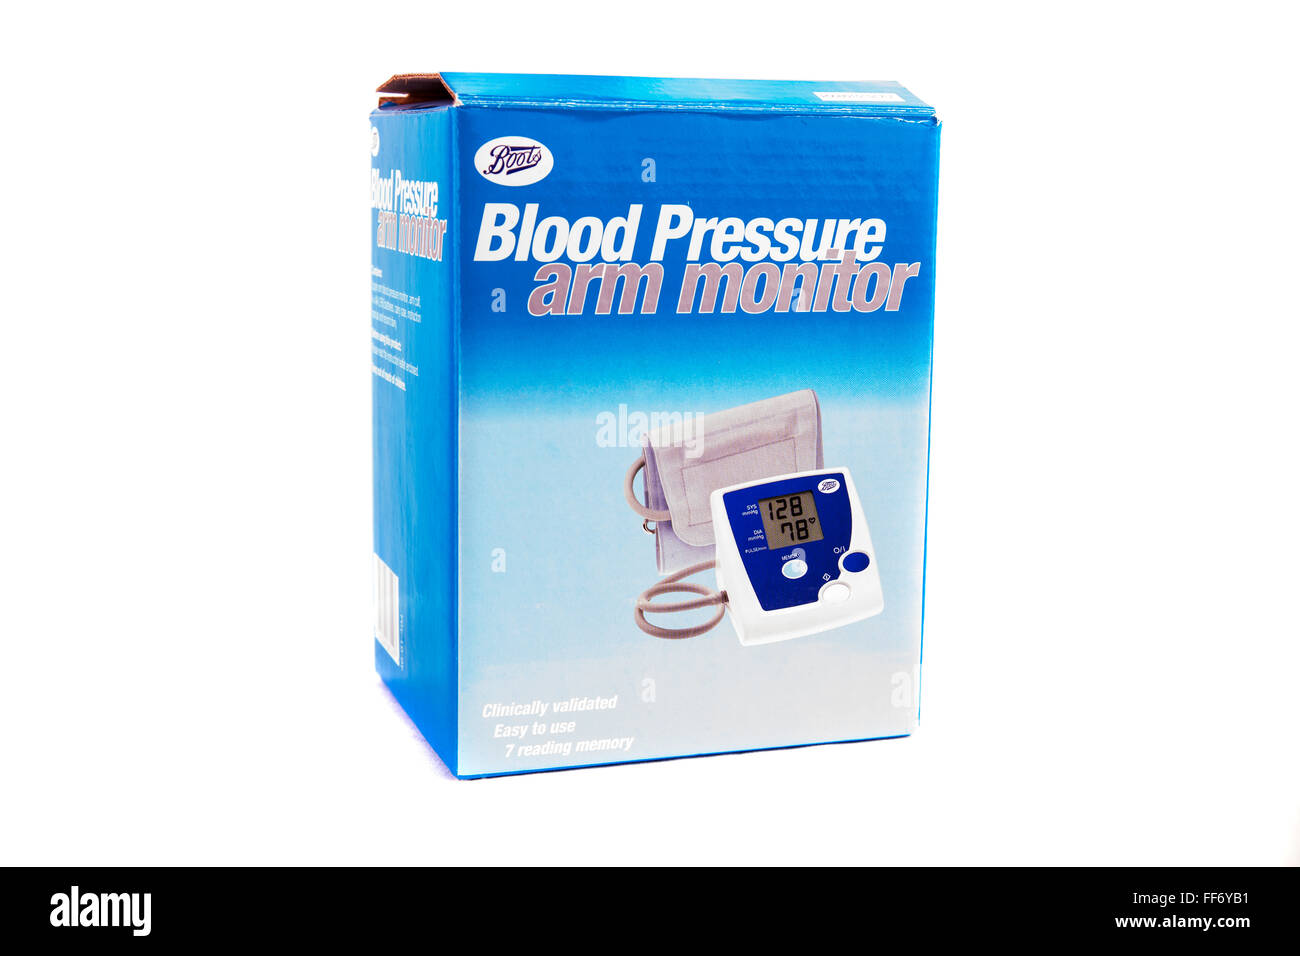 Blood pressure arm monitor machine box for home use cutout cut out white background isolated - Stock Image